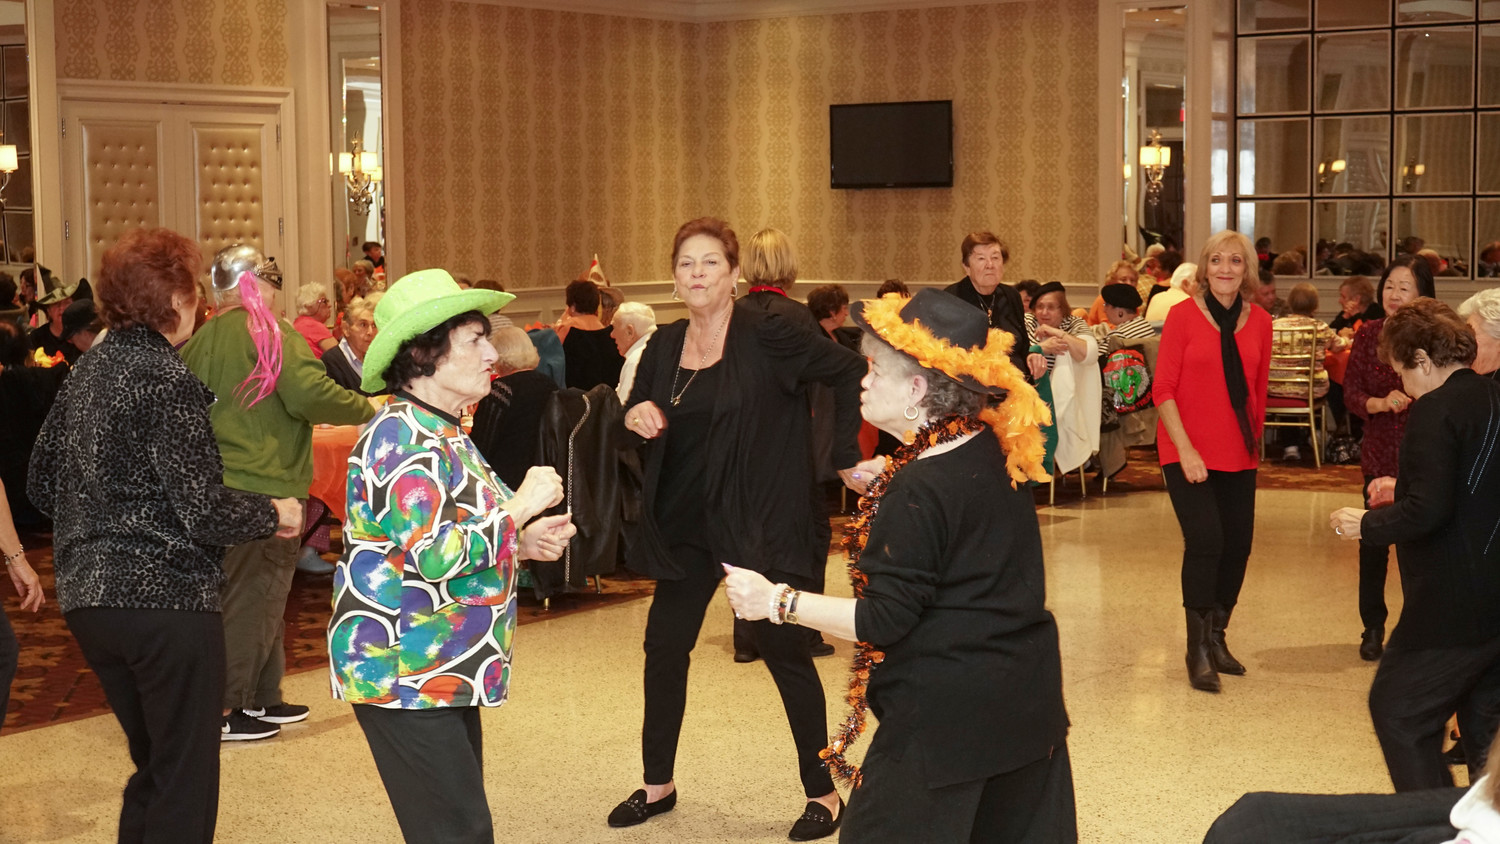 Connie G, center, busted a move on the dance floor.